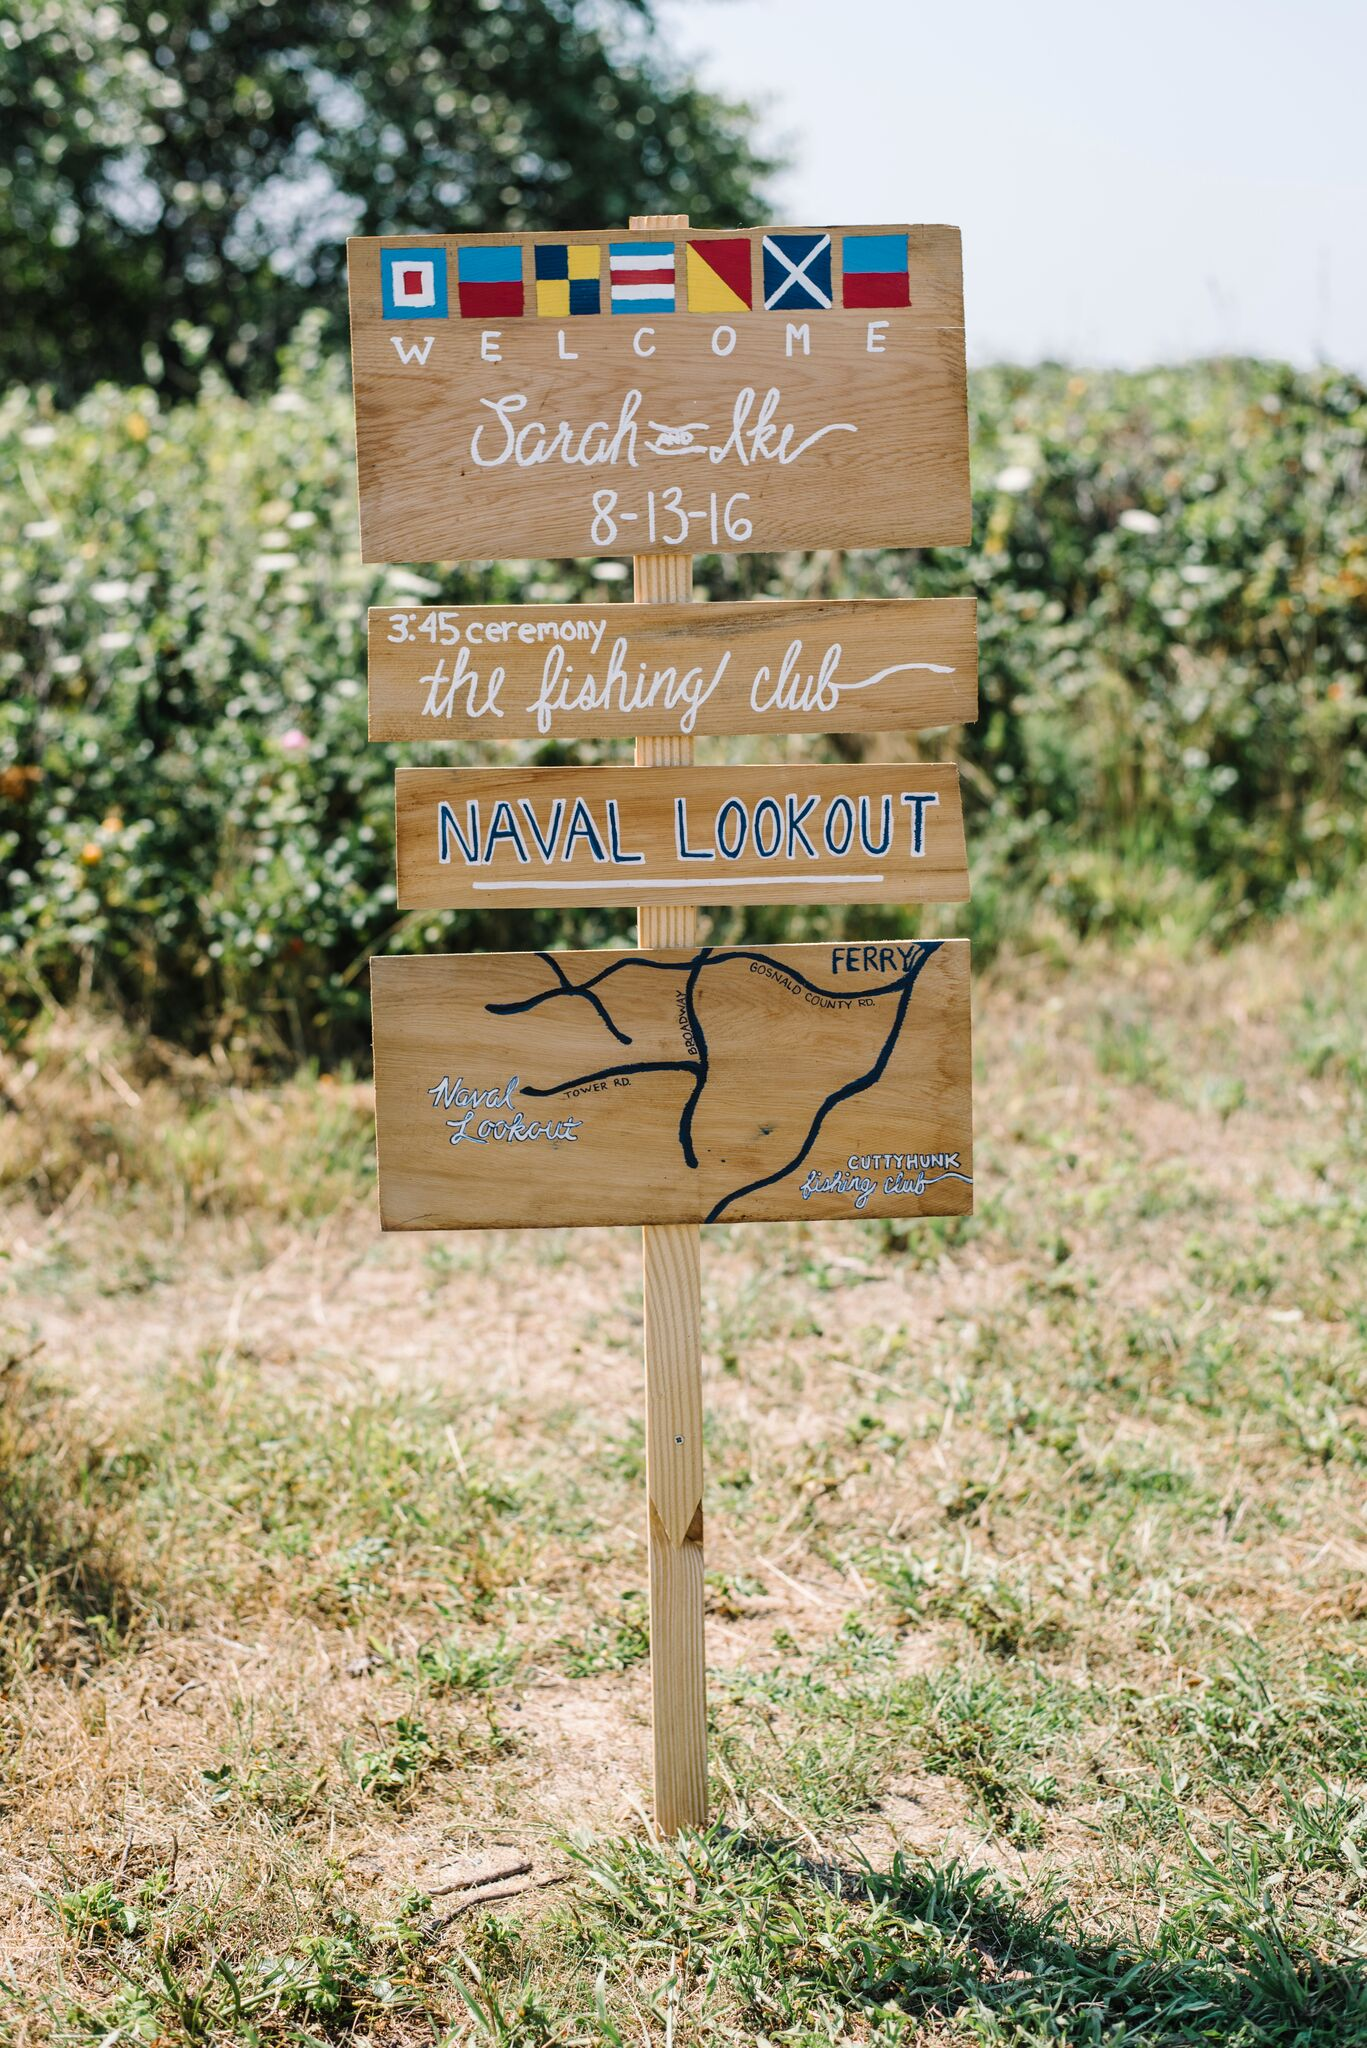 Bride and Groom welcome sign on cutty hunk island